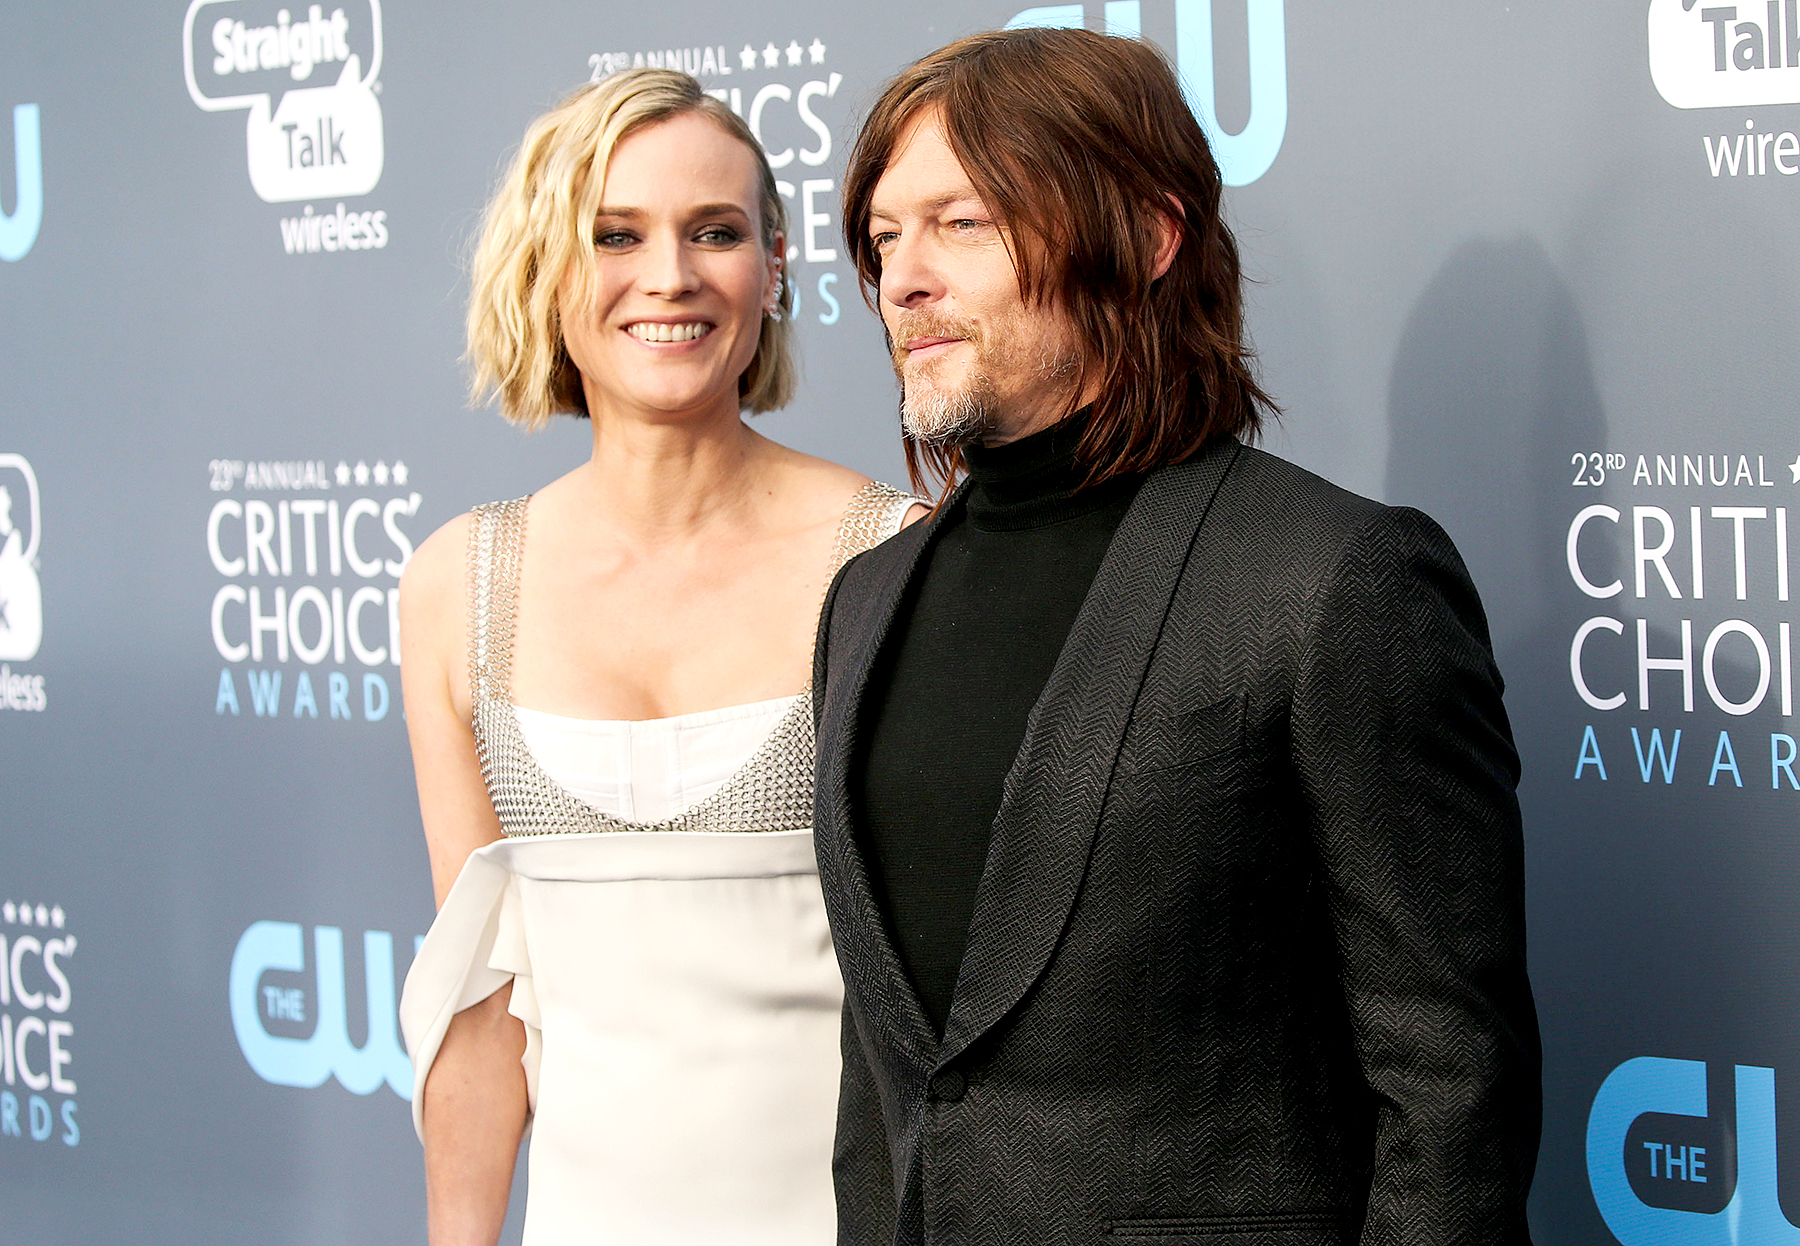 595e8cd27e3c5 Diane Kruger Is Pregnant, Expecting First Child With Boyfriend Norman Reedus